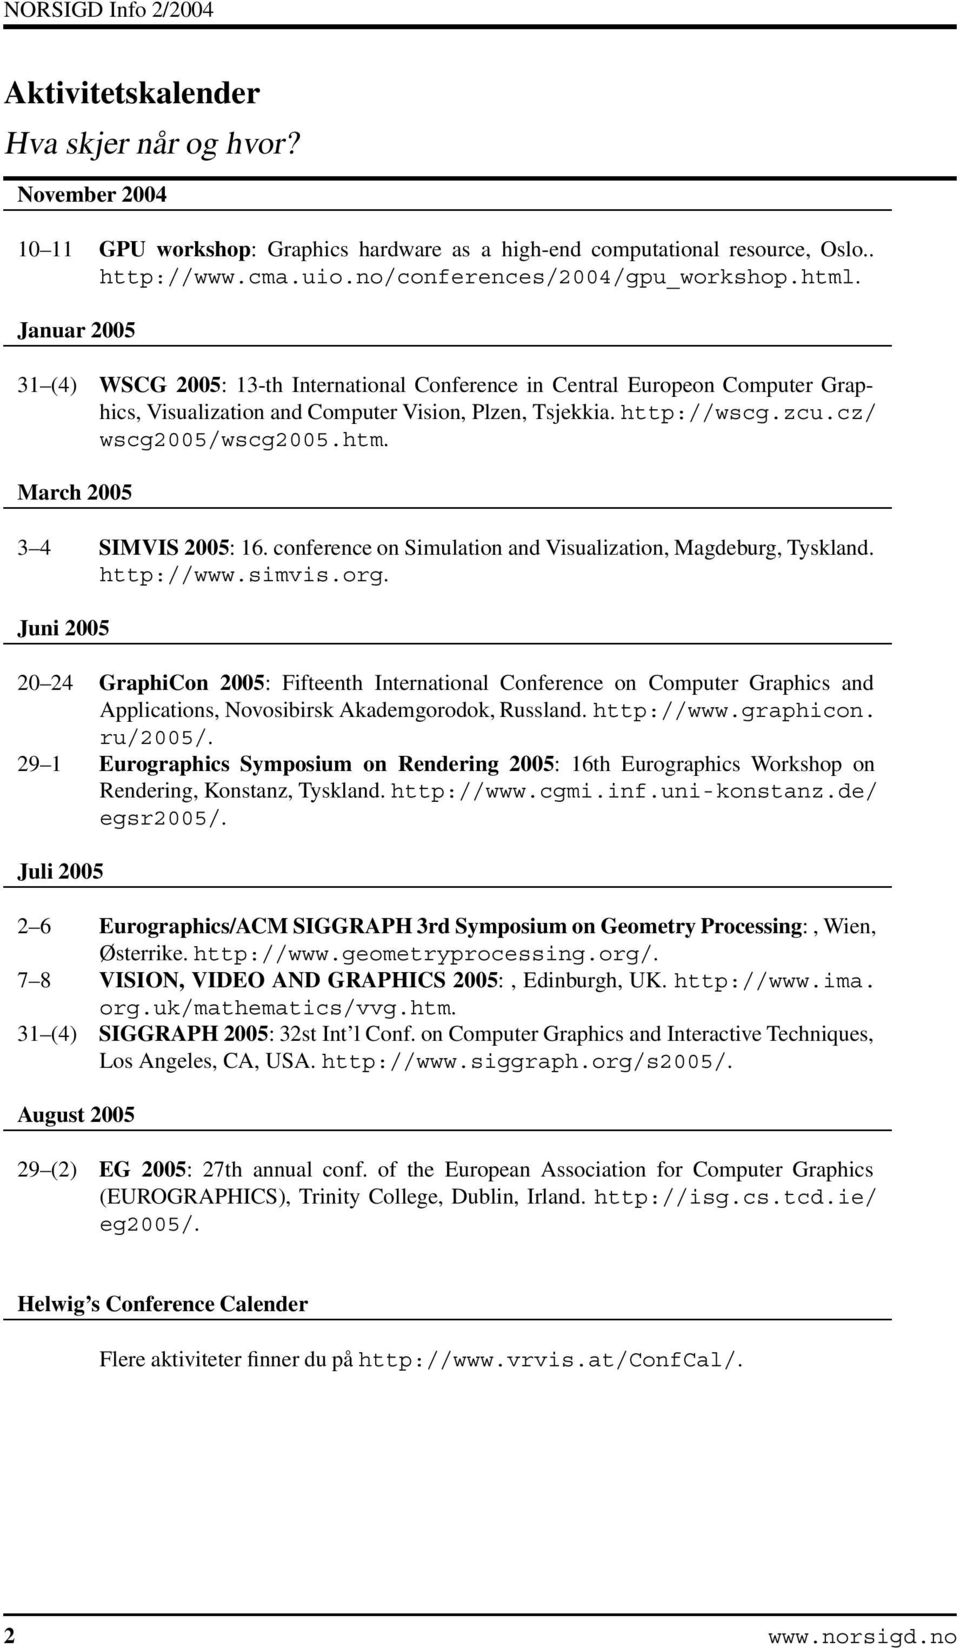 March 2005 3 4 SIMVIS 2005: 16. conference on Simulation and Visualization, Magdeburg, Tyskland. http://www.simvis.org.